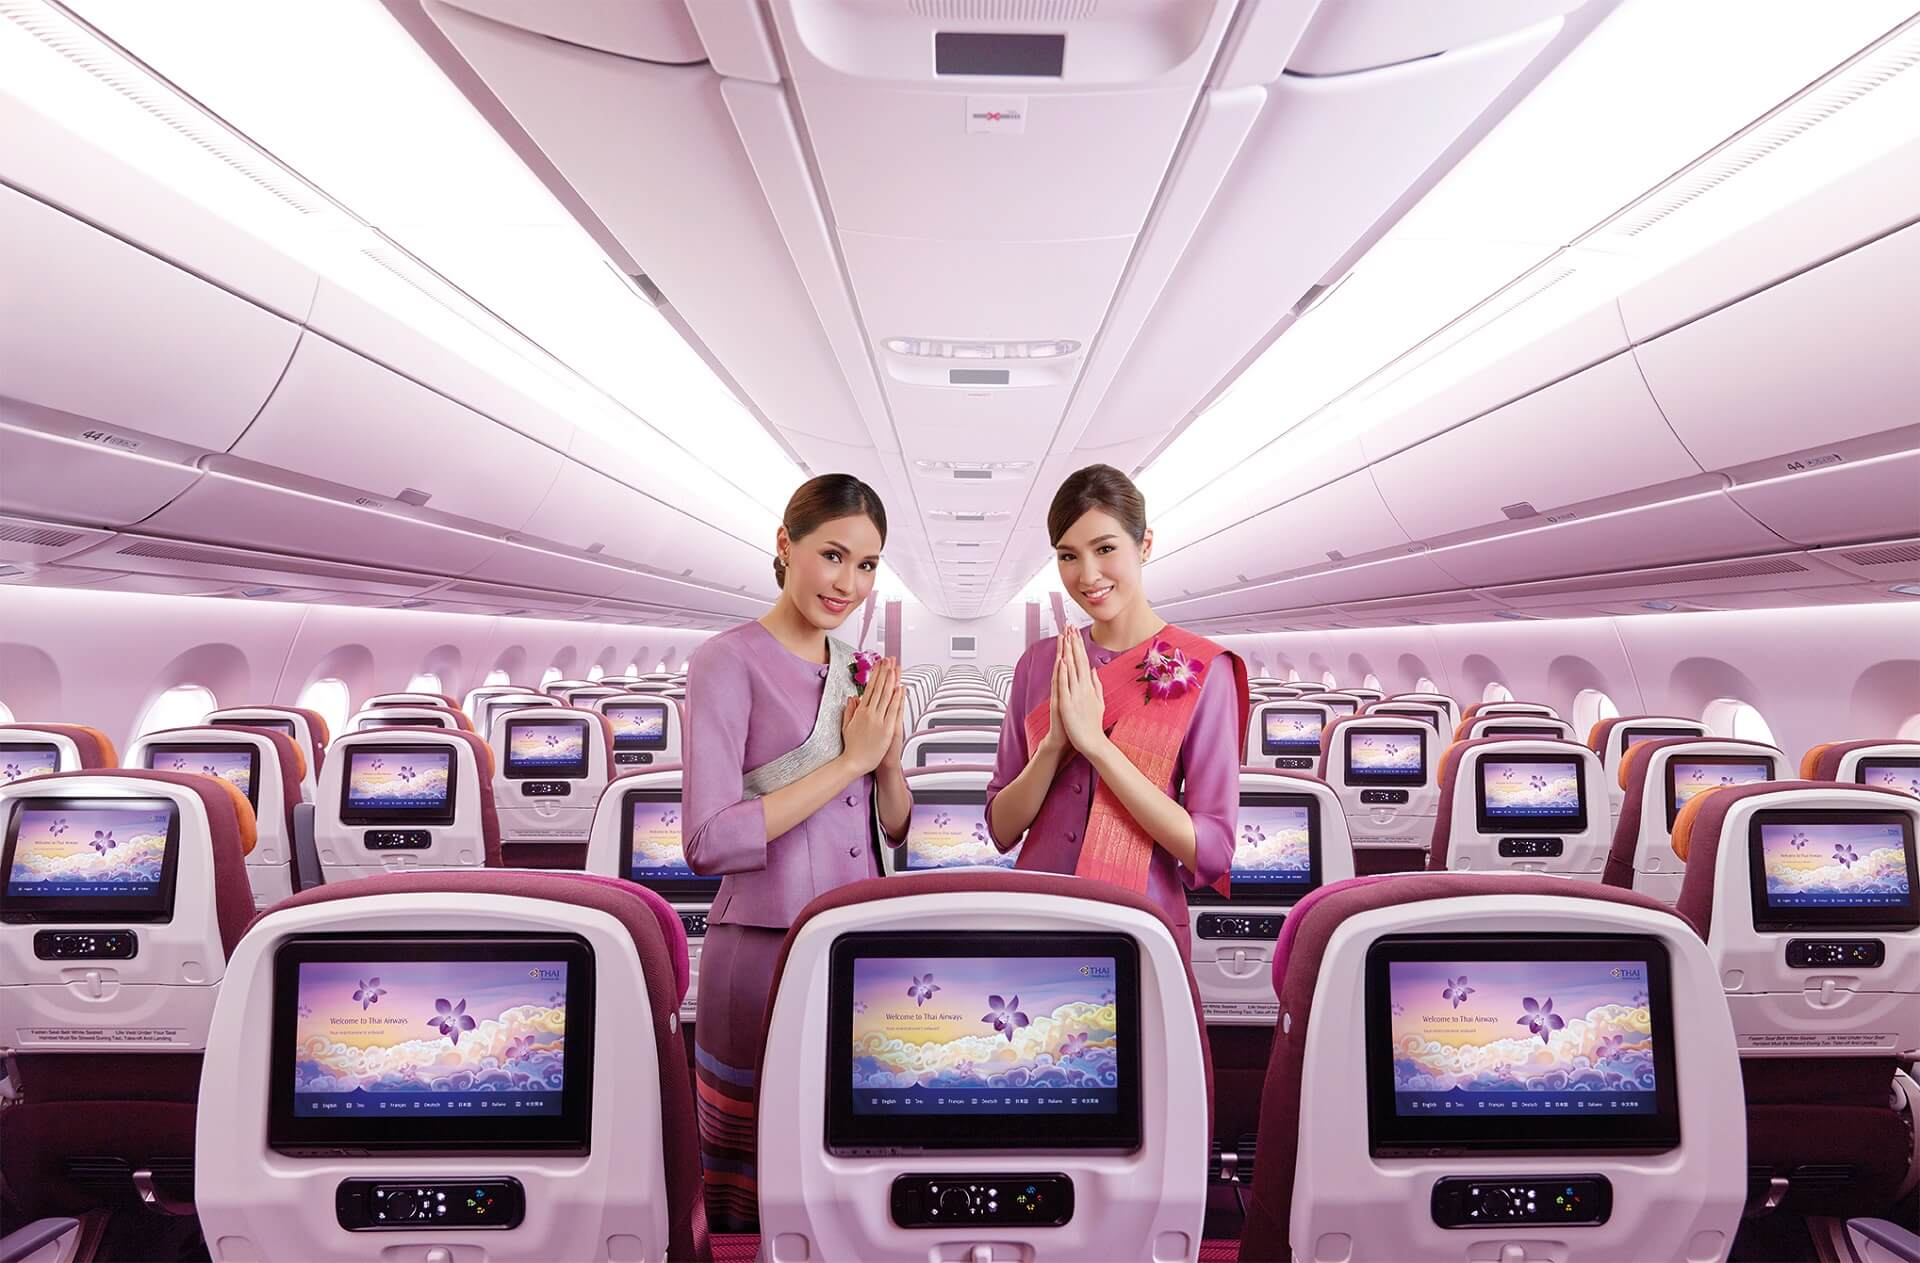 Stewardessen von Thai Airways